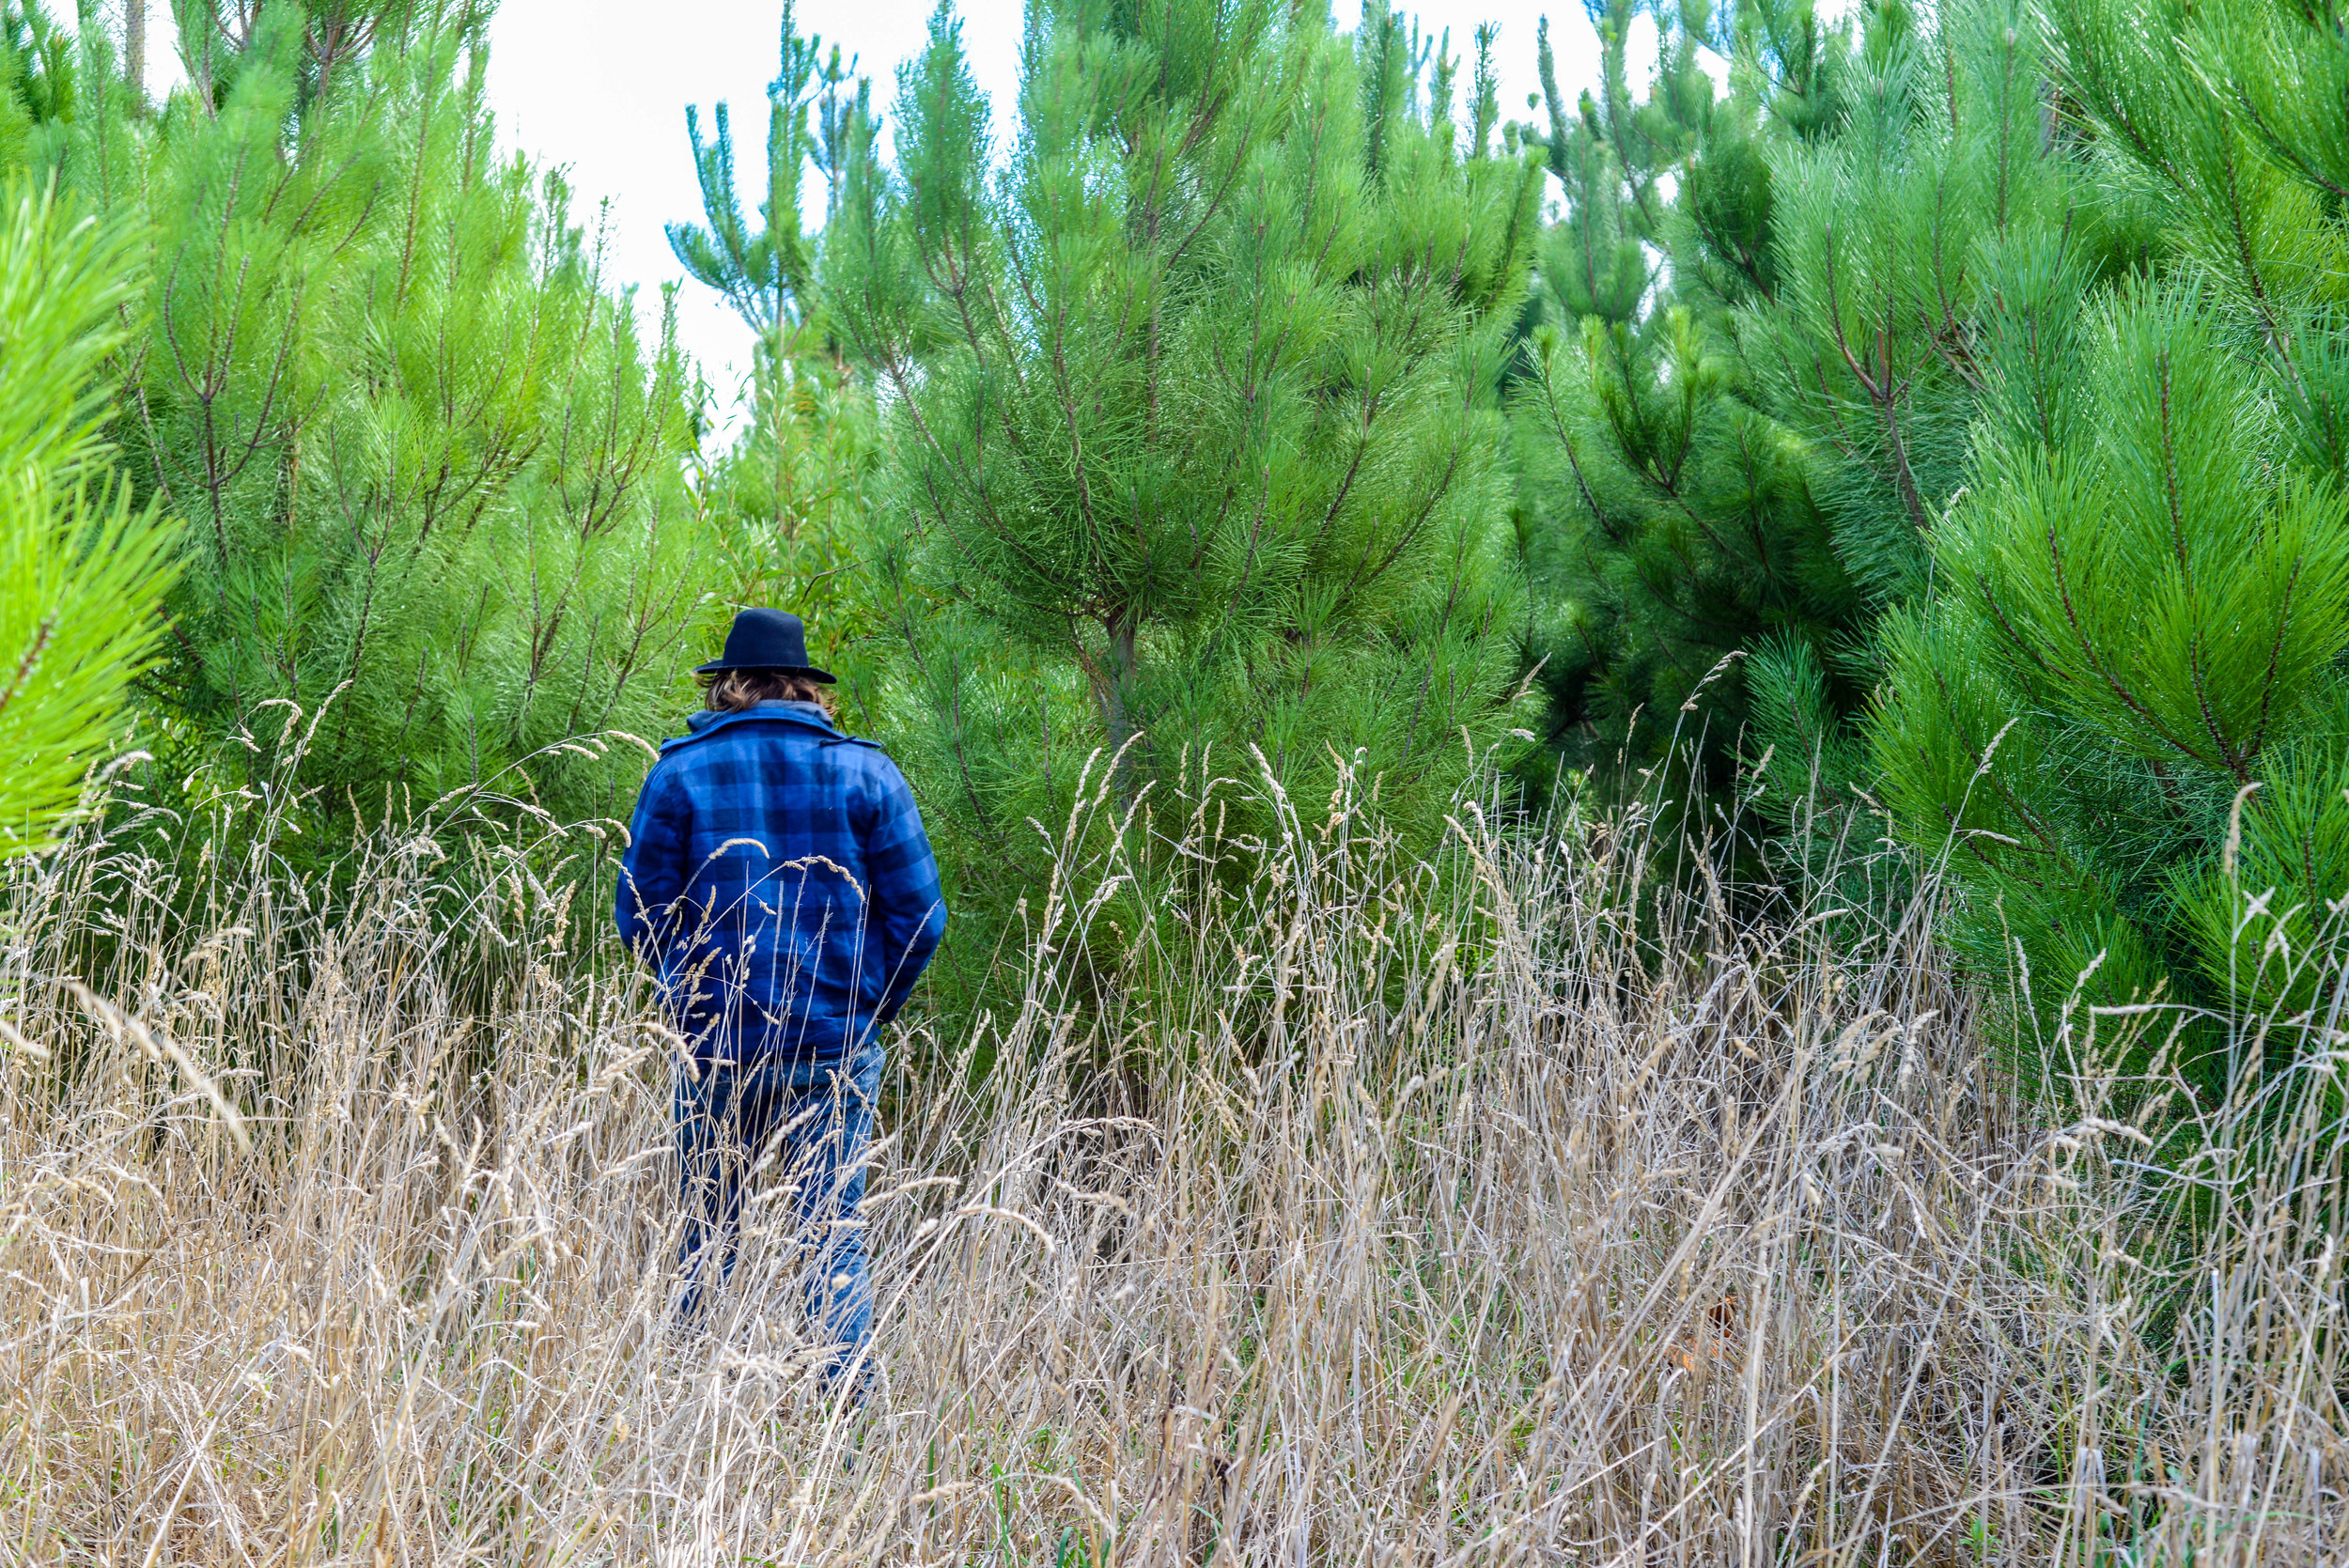 Bush walking through the pines in Mount Gambier, South Australia.